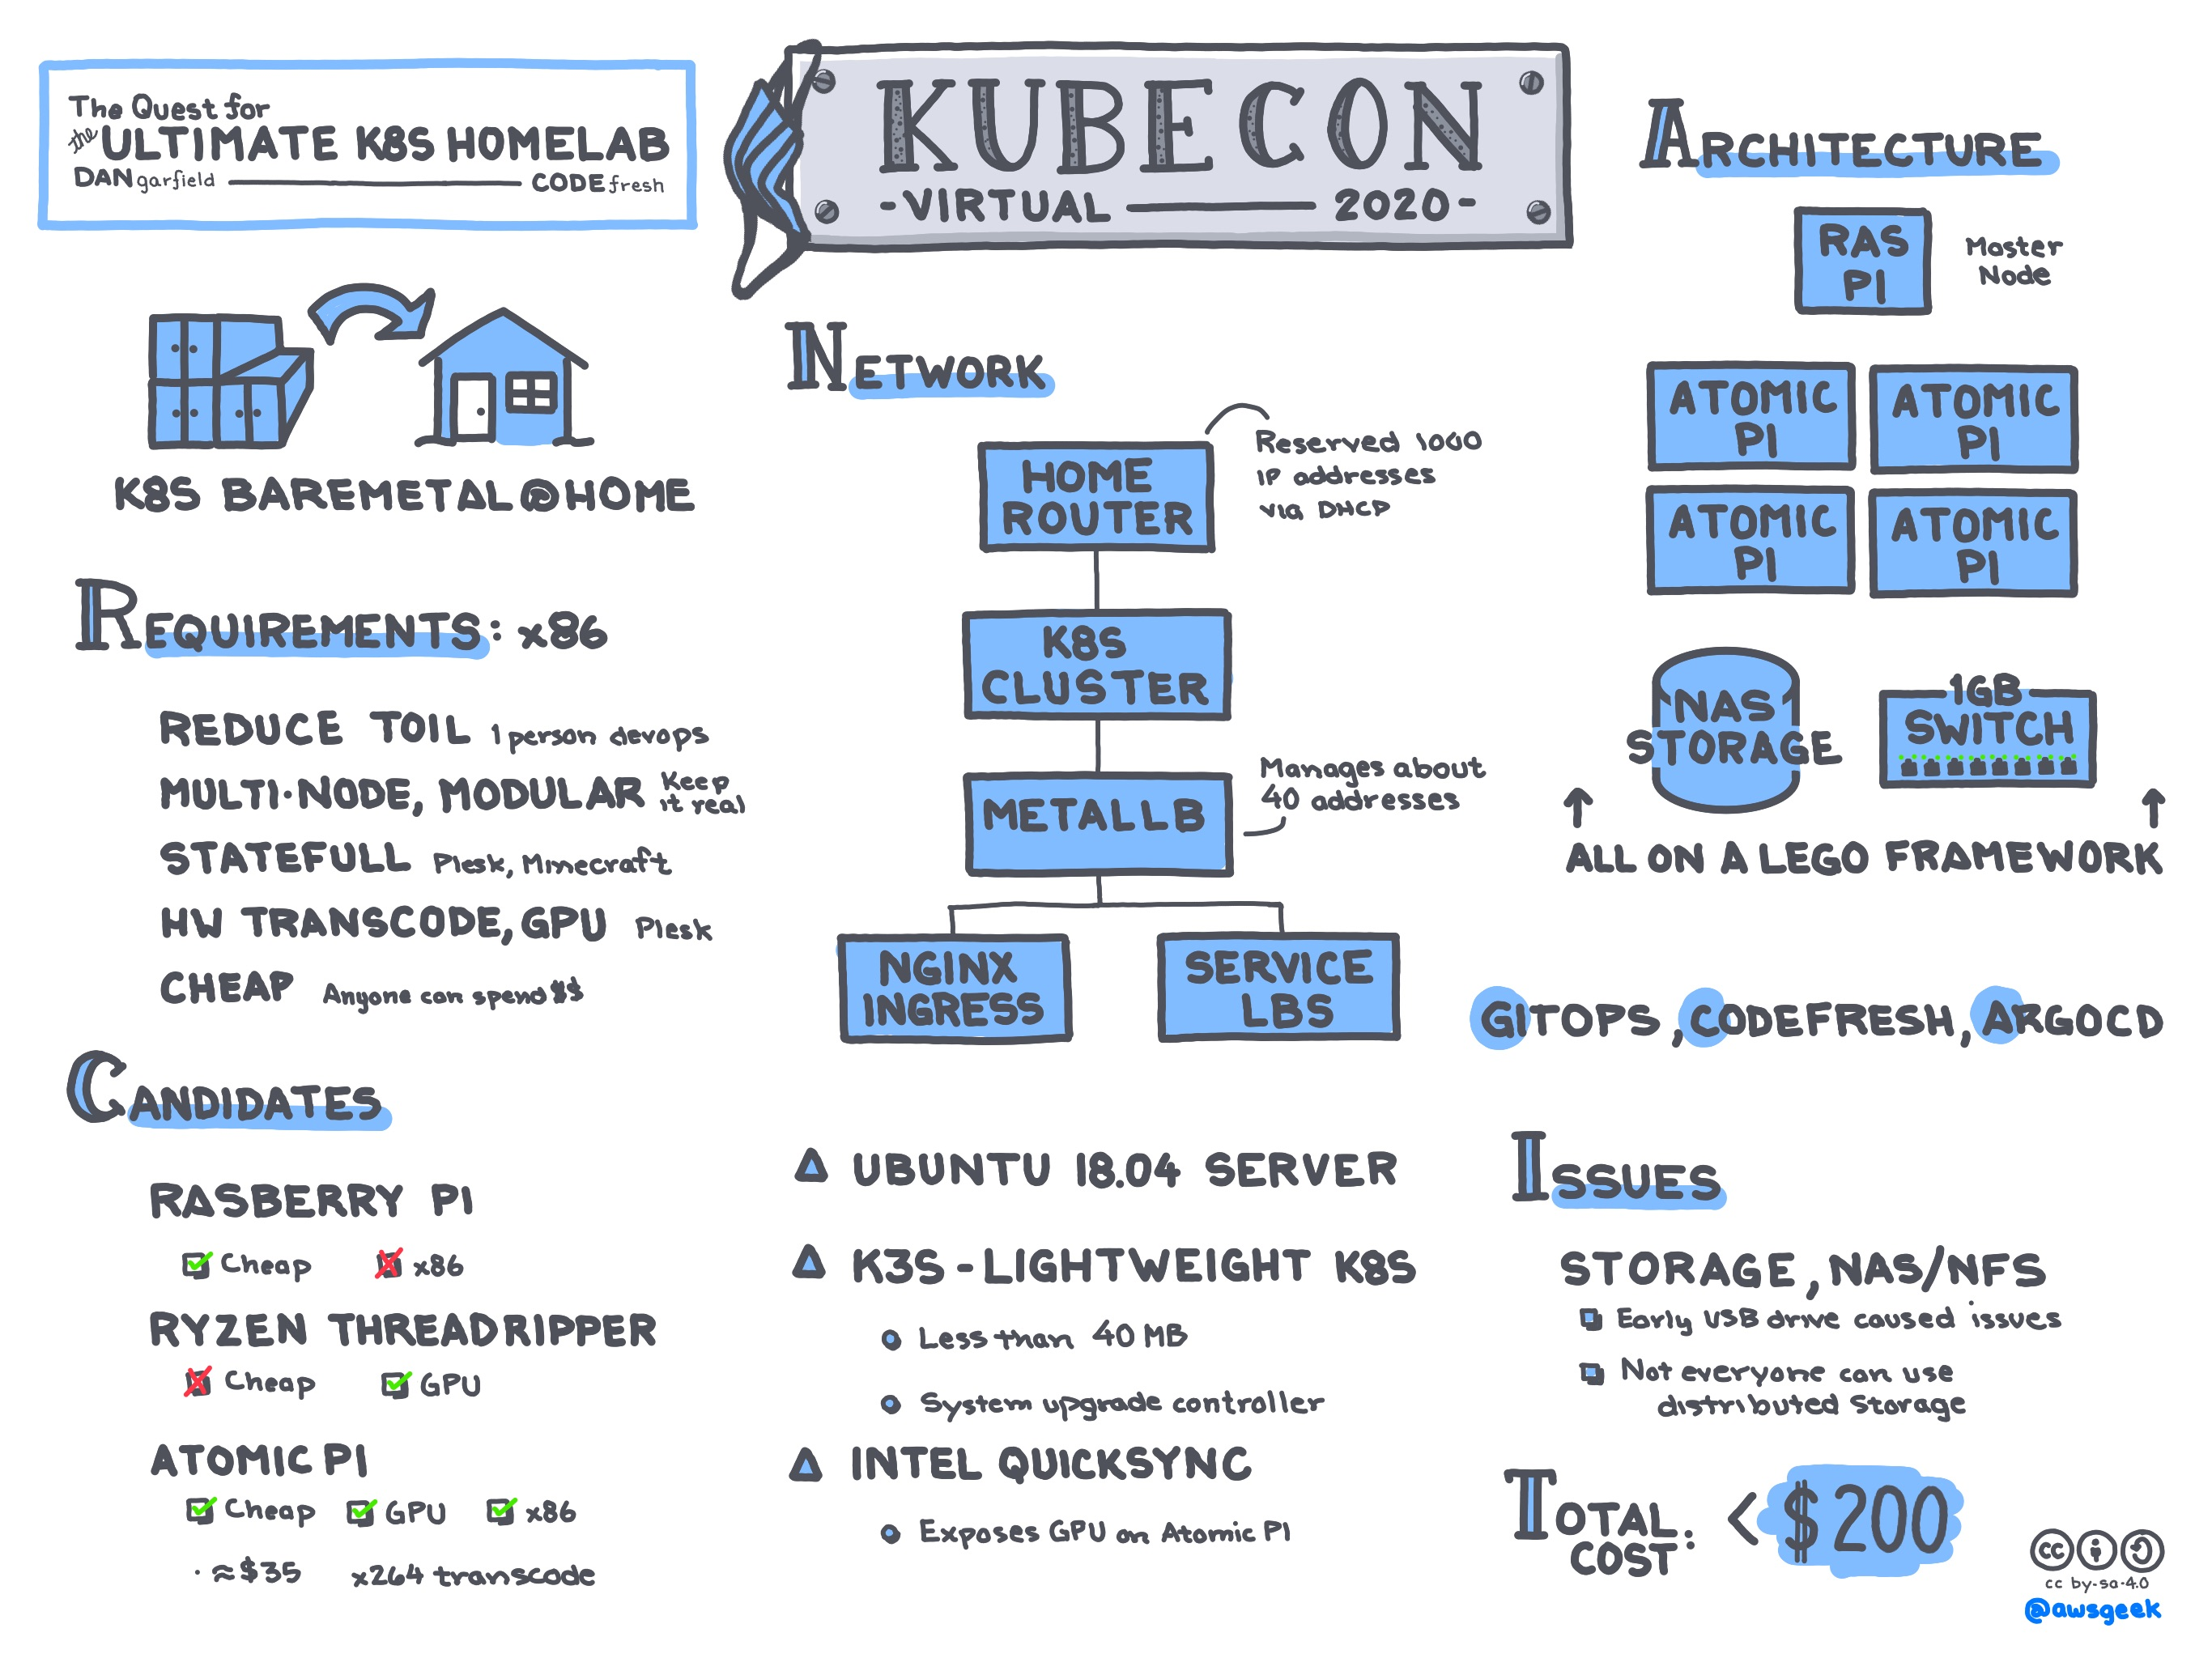 The-Quest-for-the-Ultimate-Kubernetes-Homelab.jpg